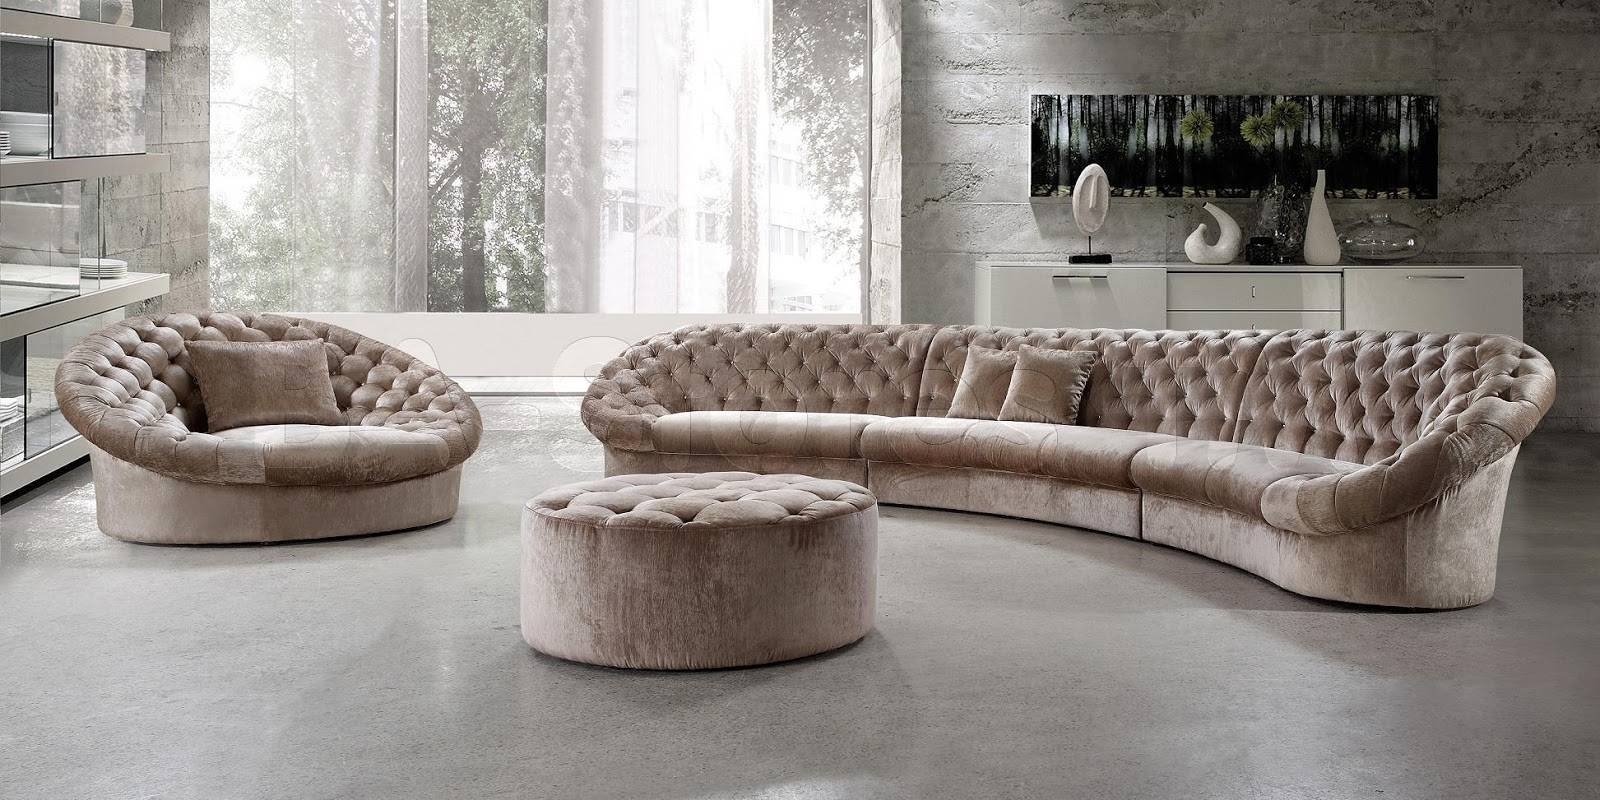 Interesting Semi Circular Sofas Sectionals 70 With Additional regarding Semi Sofas (Image 6 of 15)